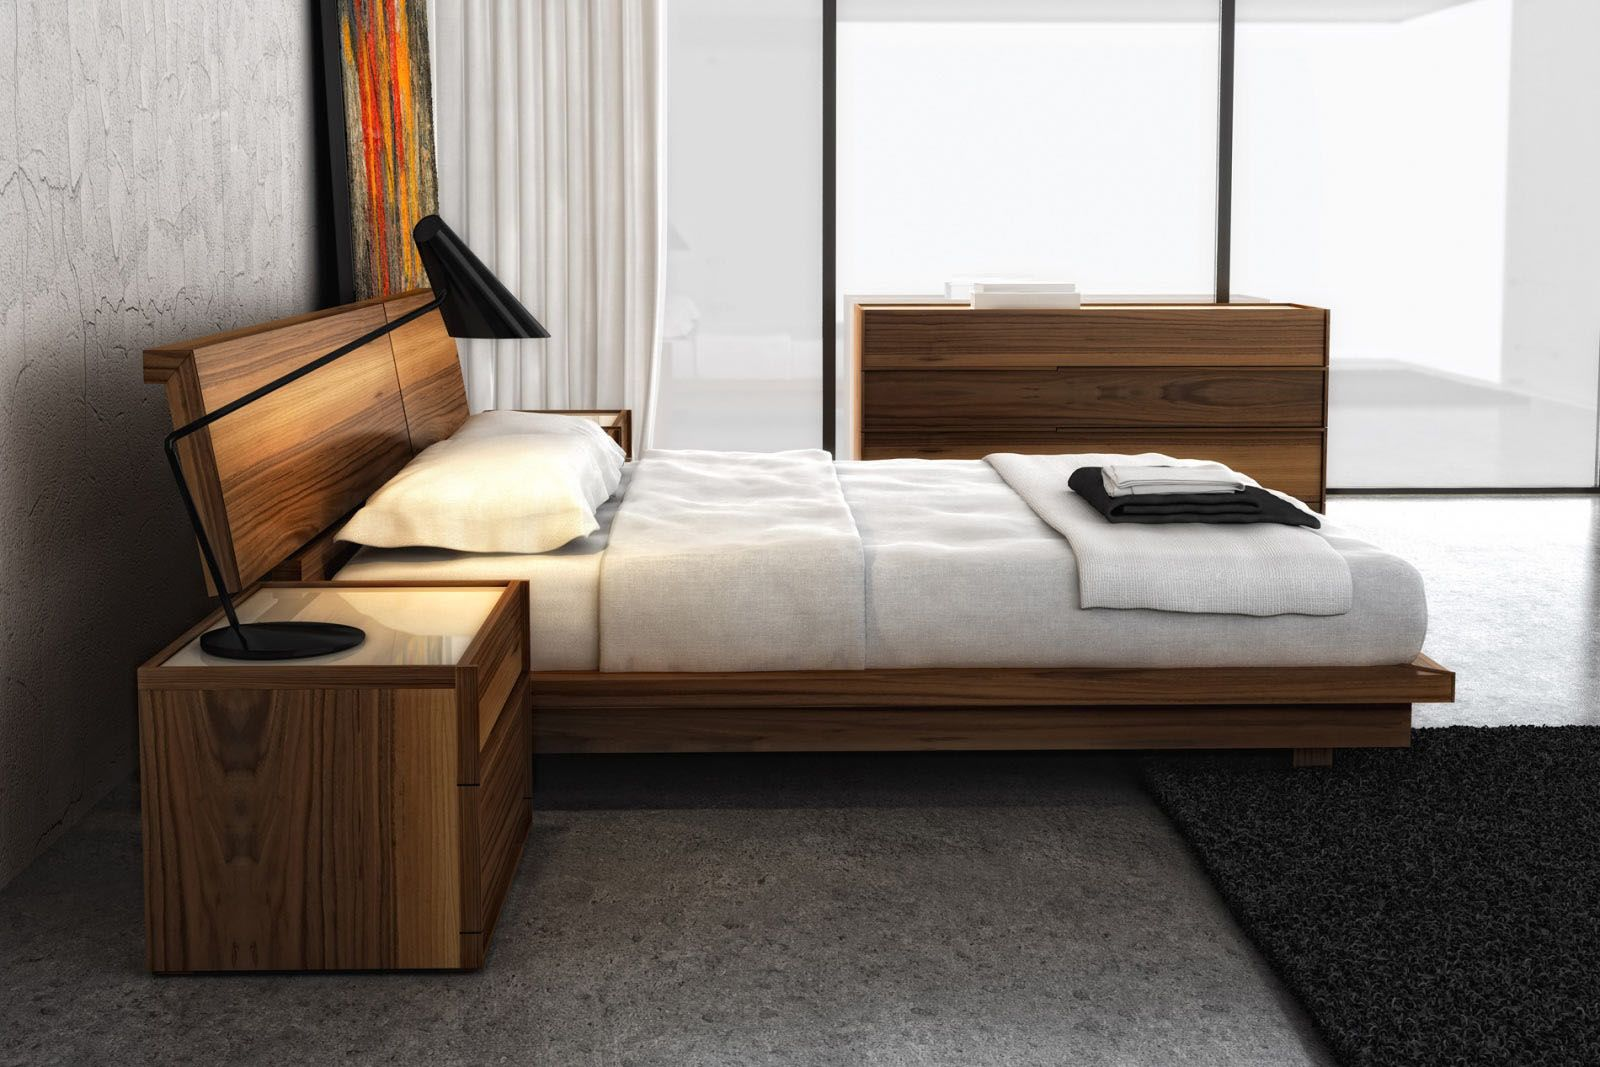 Huppe bed in walnut. Clean lines help bring out the